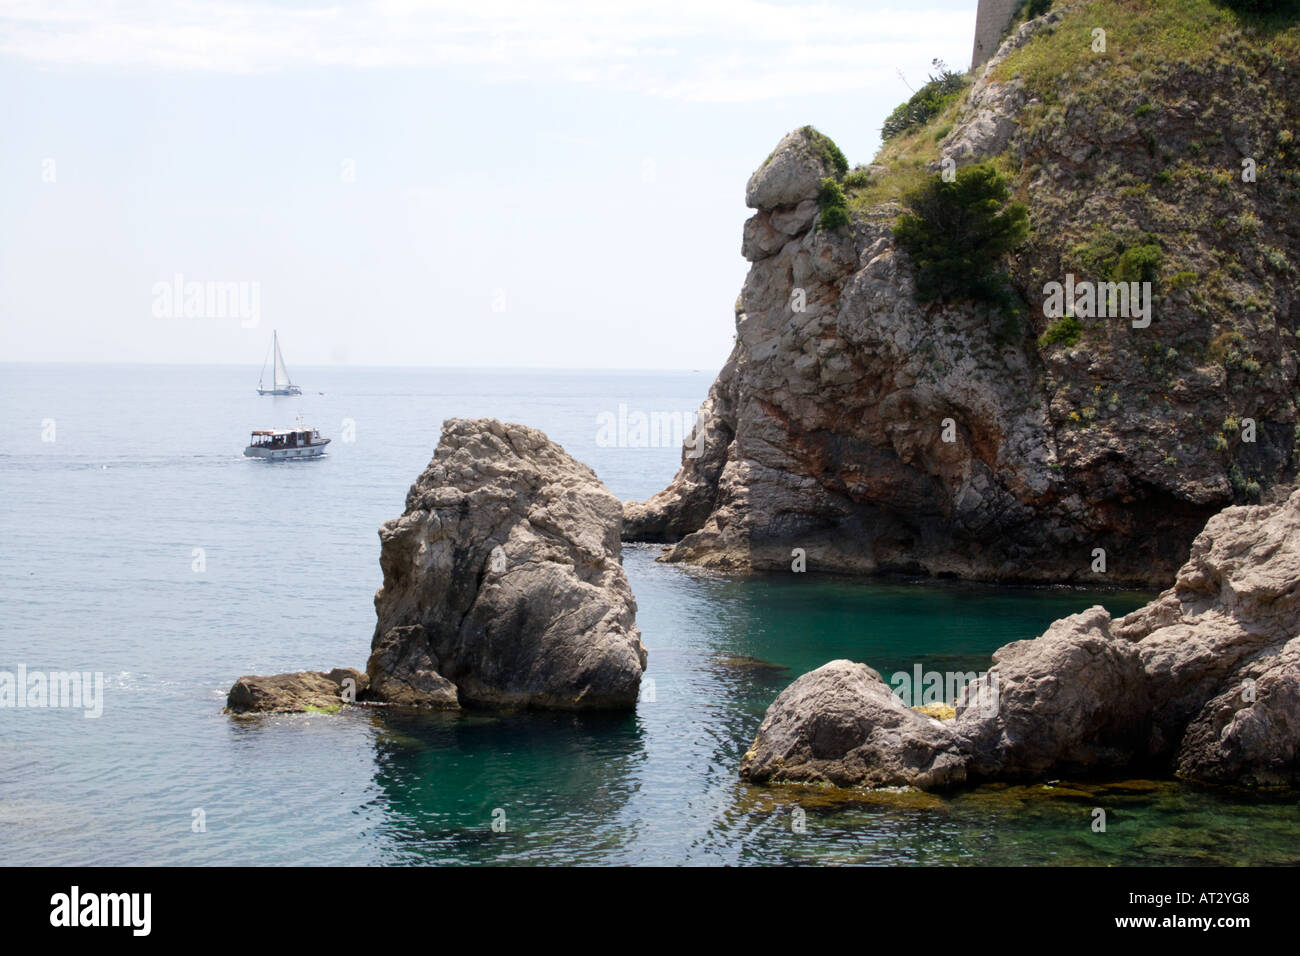 Sailing Boats in the Adriatic Sea - Stock Image